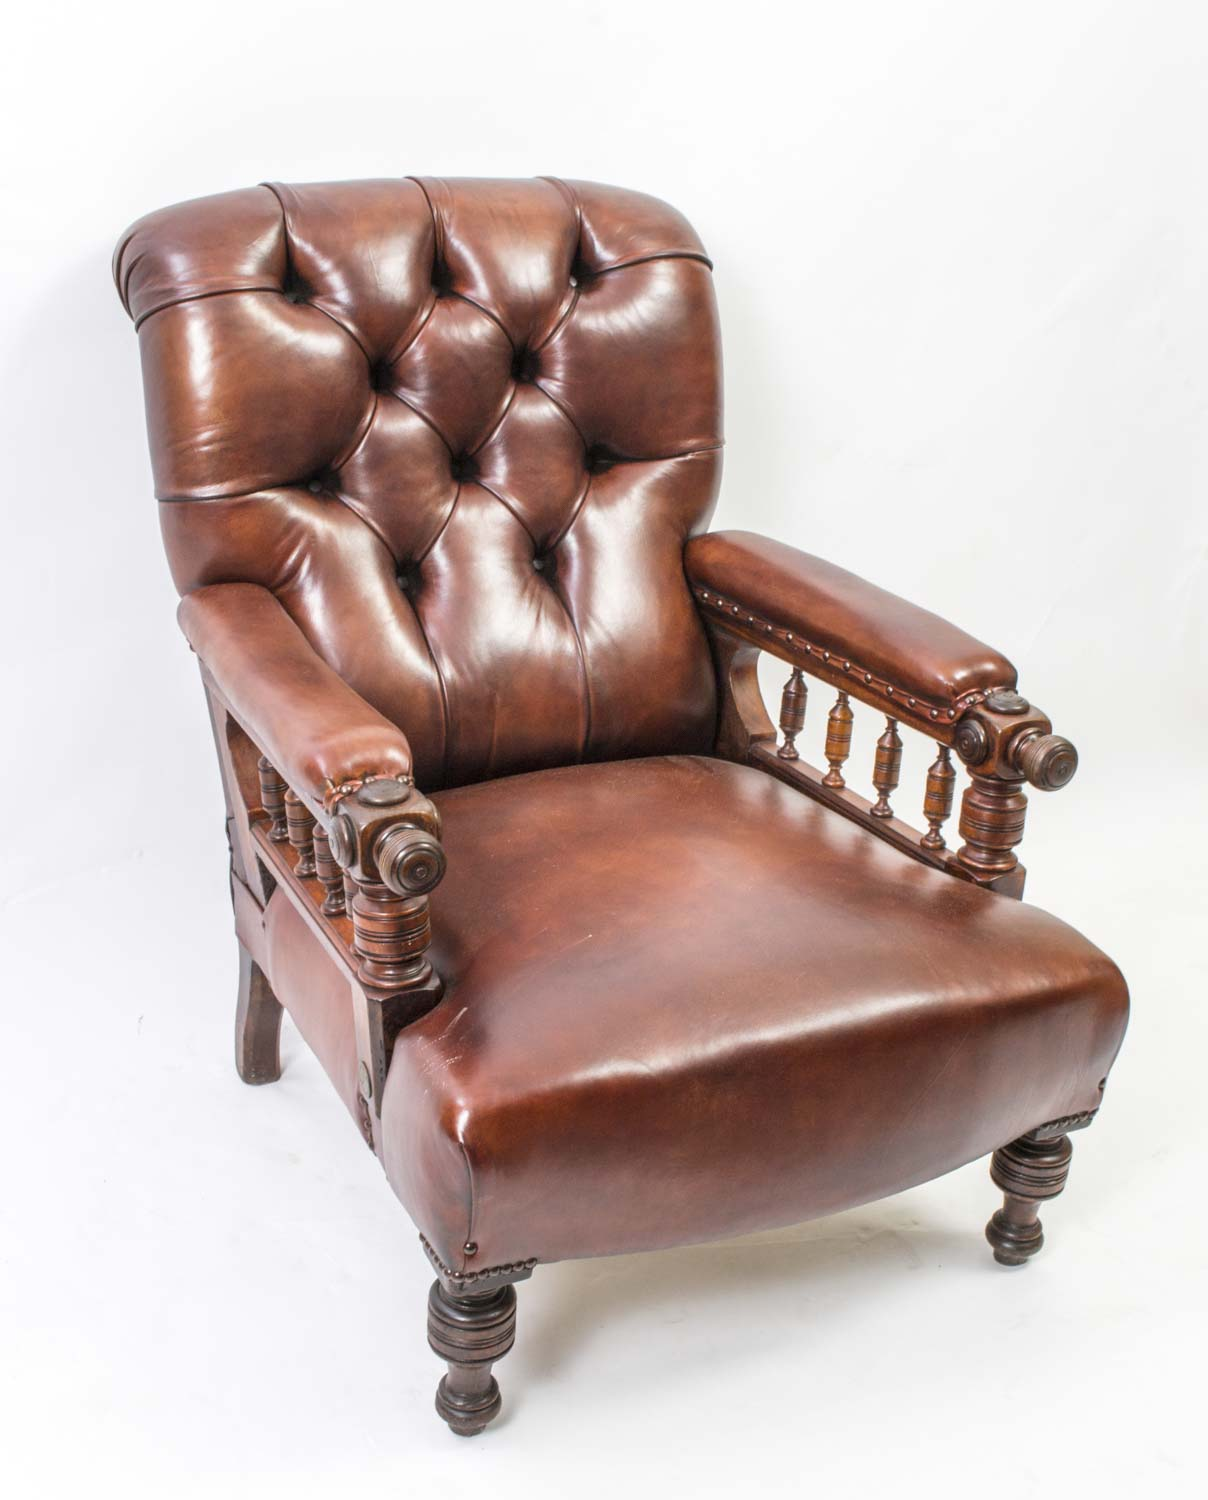 Antique victorian armchair - Antique Victorian Armchair 38